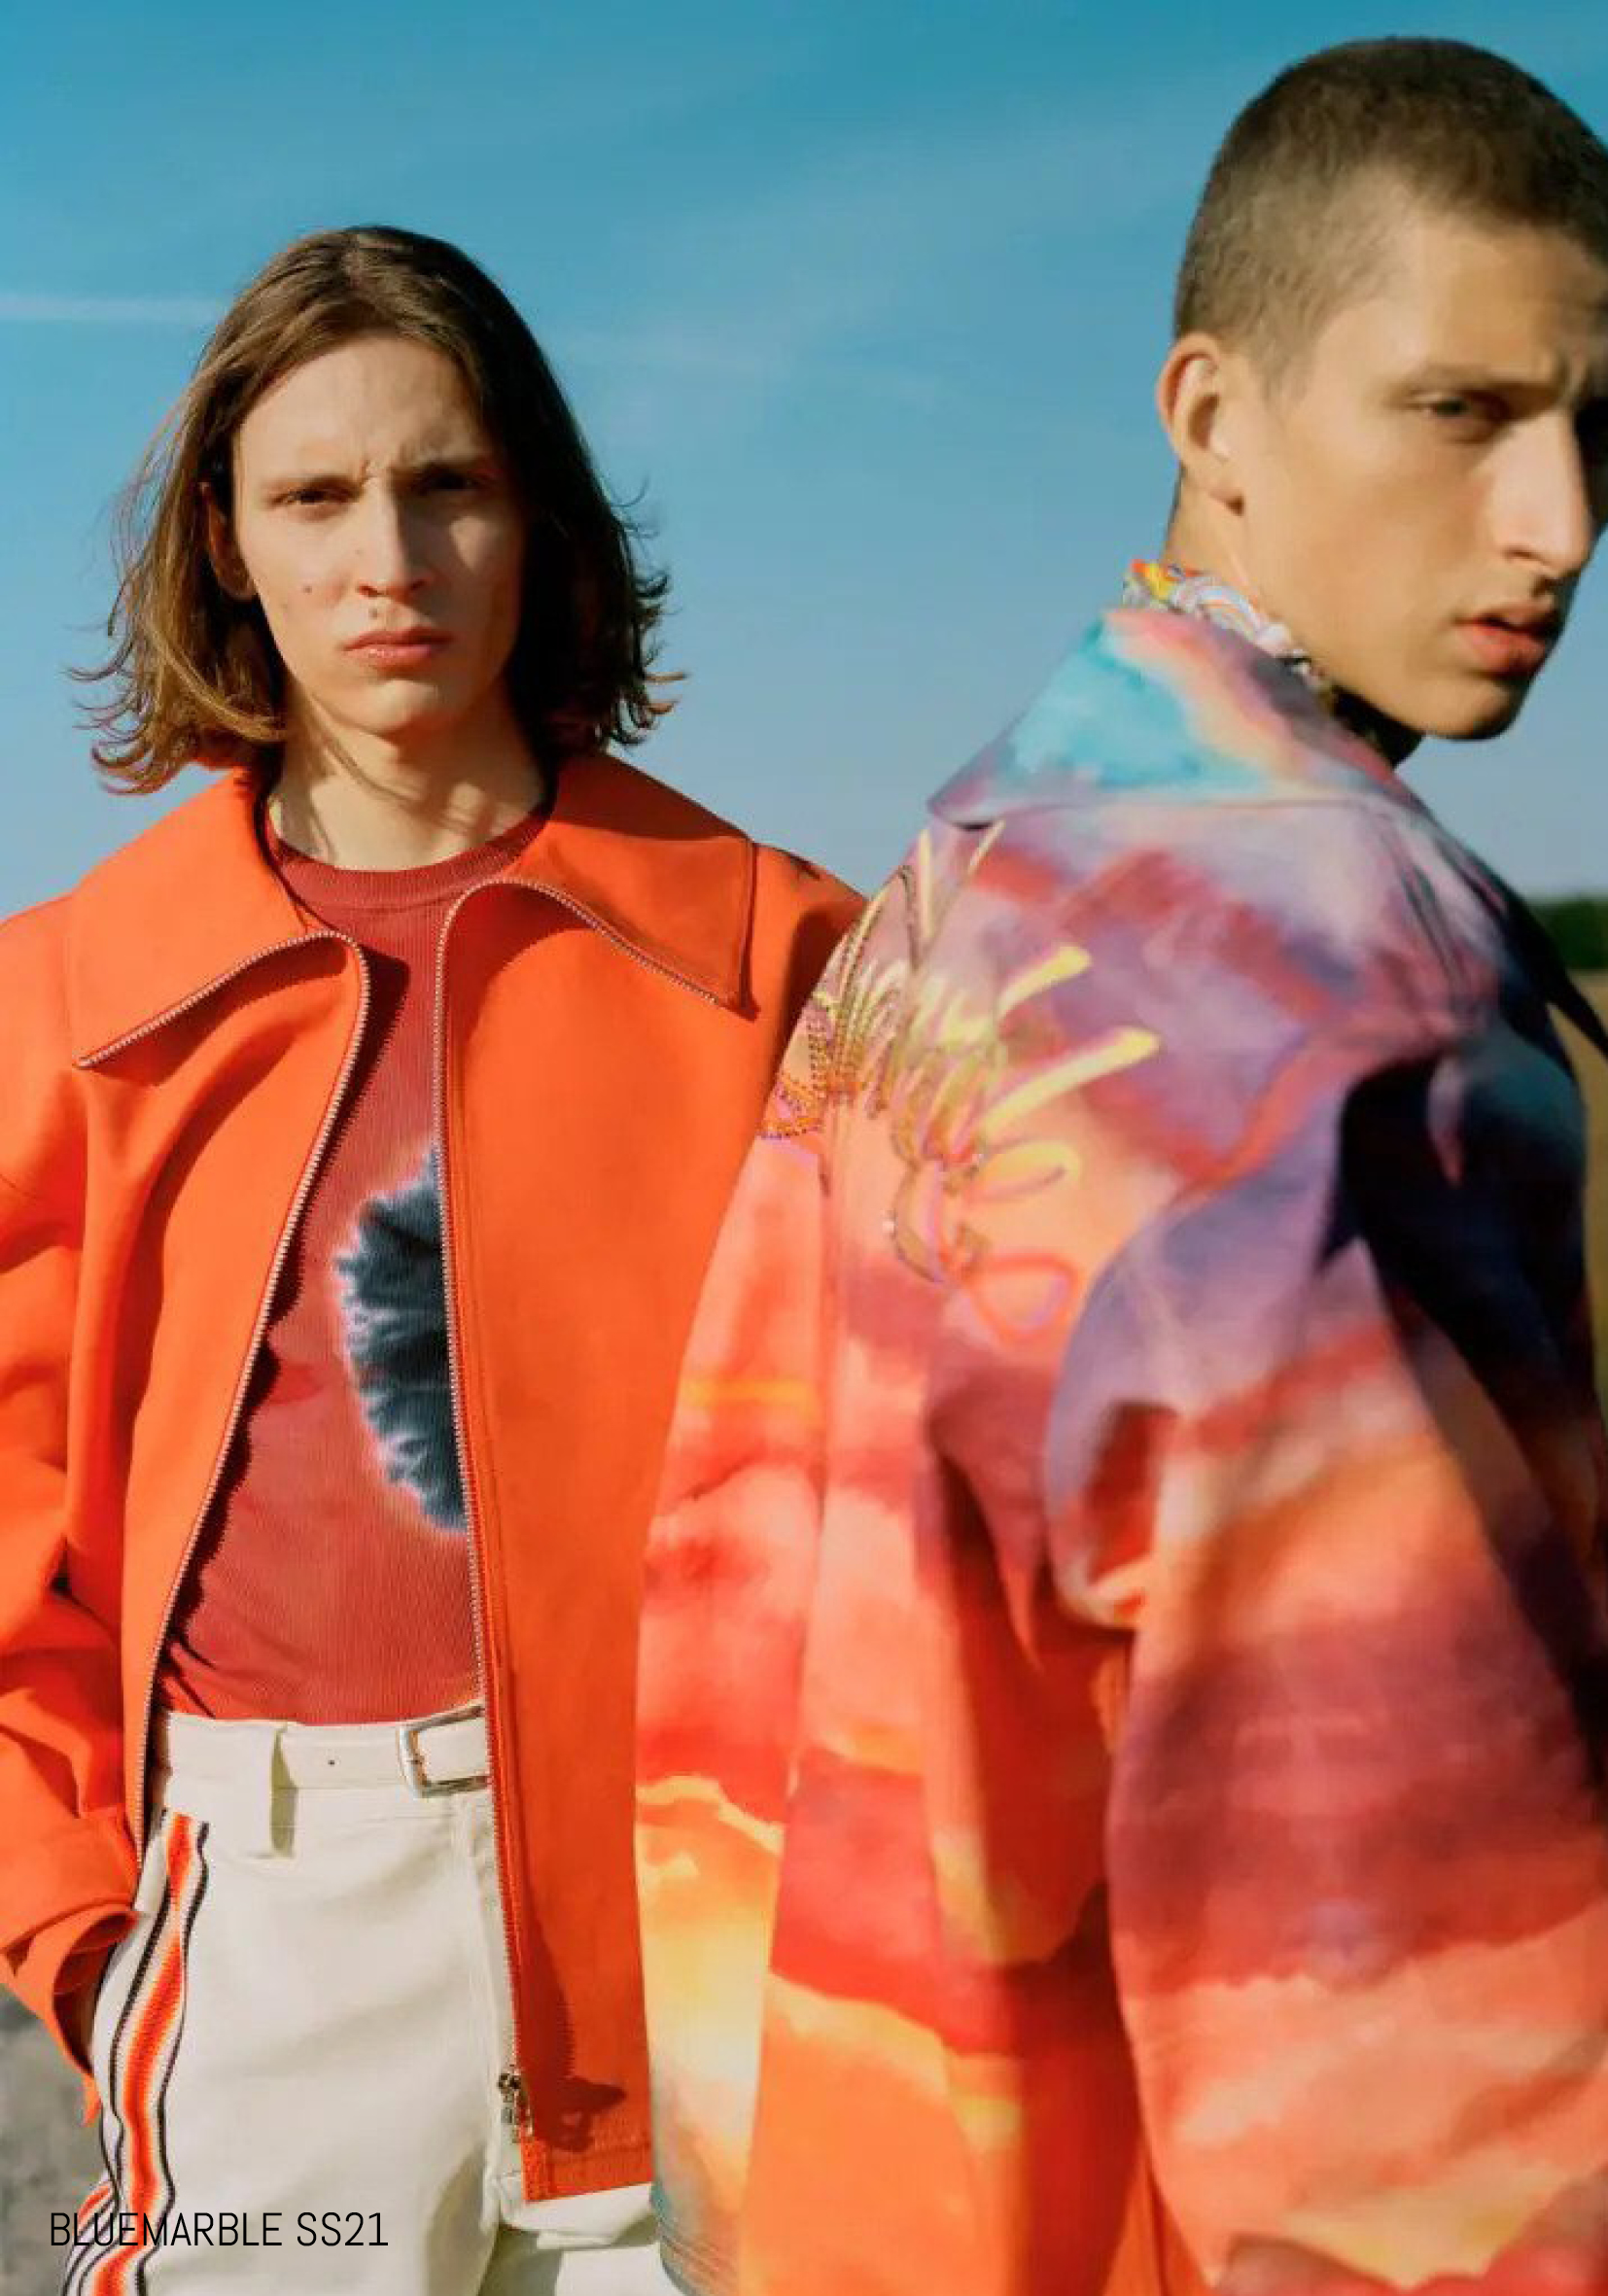 Male models pose in orange and tie dye outerwear for BLUEMARBLE SS21